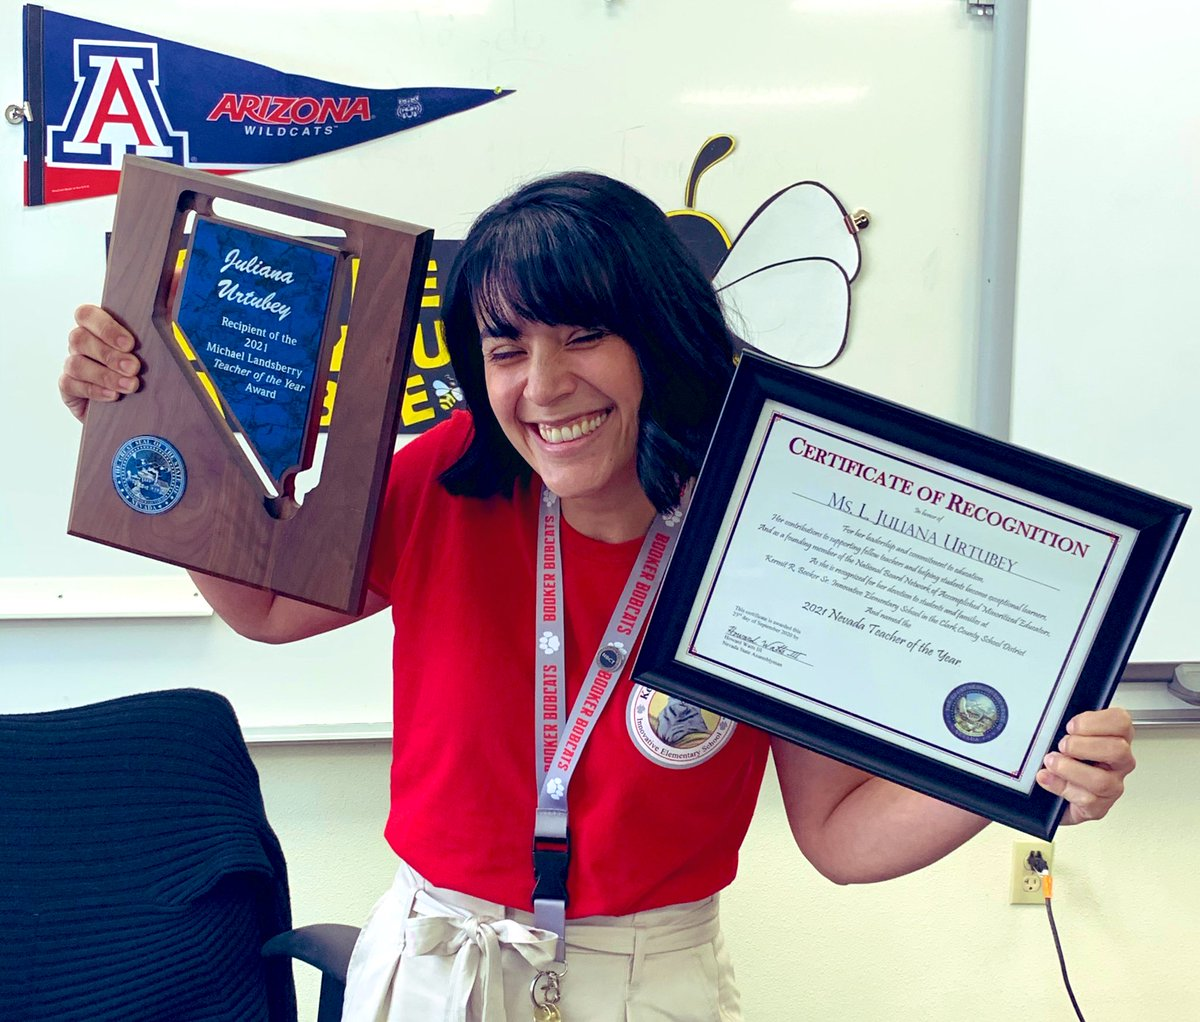 Photo of alumna Juliana Urtubey with her Nevada 2020 Teacher of the Year plaque and certificate. She is wearing a red tee and khaki shorts with a University of Arizona pendant flag in the background